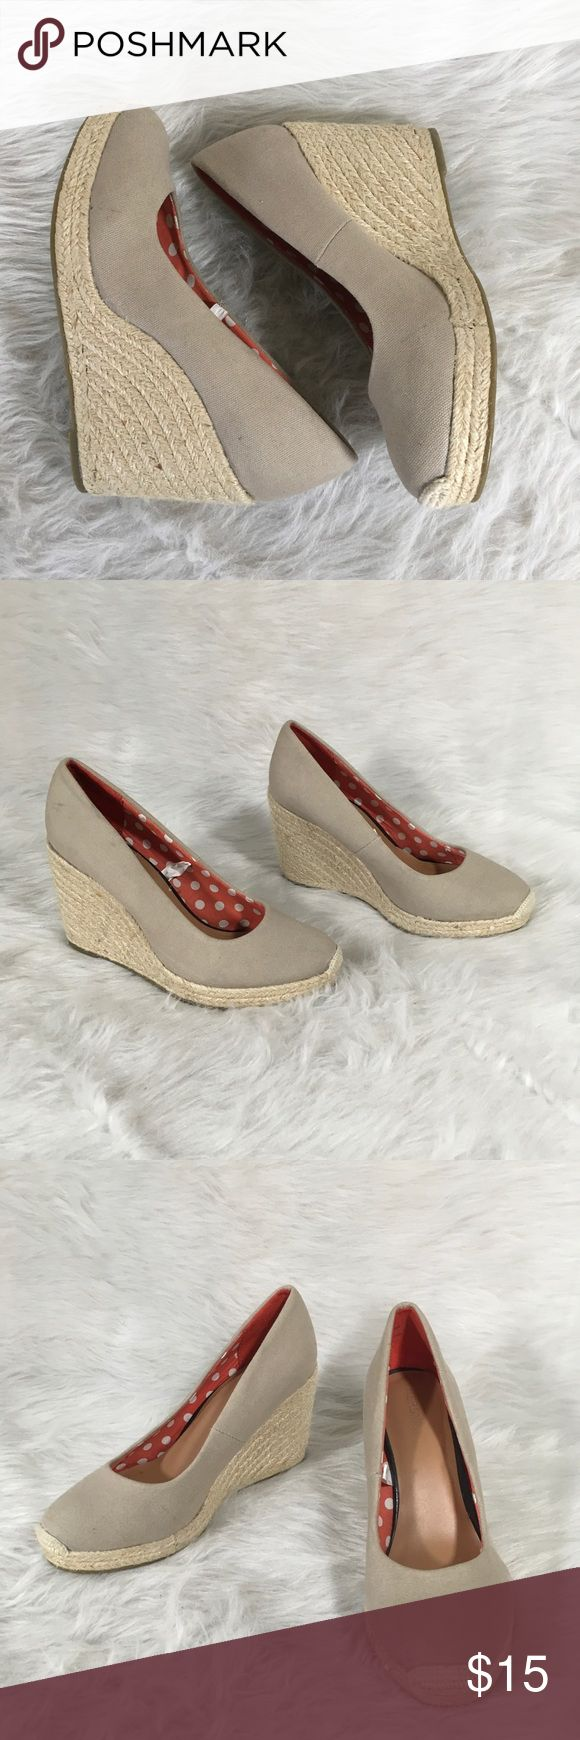 """Women's Merona Beige Espadrille Wedges Size 8.5 Women's Merona Beige Espadrille Wedges Canvas Closed Toe Heels Size 8.5 Casual  Size- 8.5  Condition-Gently worn, minimal signs of wear.  Heel is 3.75"""" high and has gold tinsel throughout the wedge. Merona Shoes Wedges"""